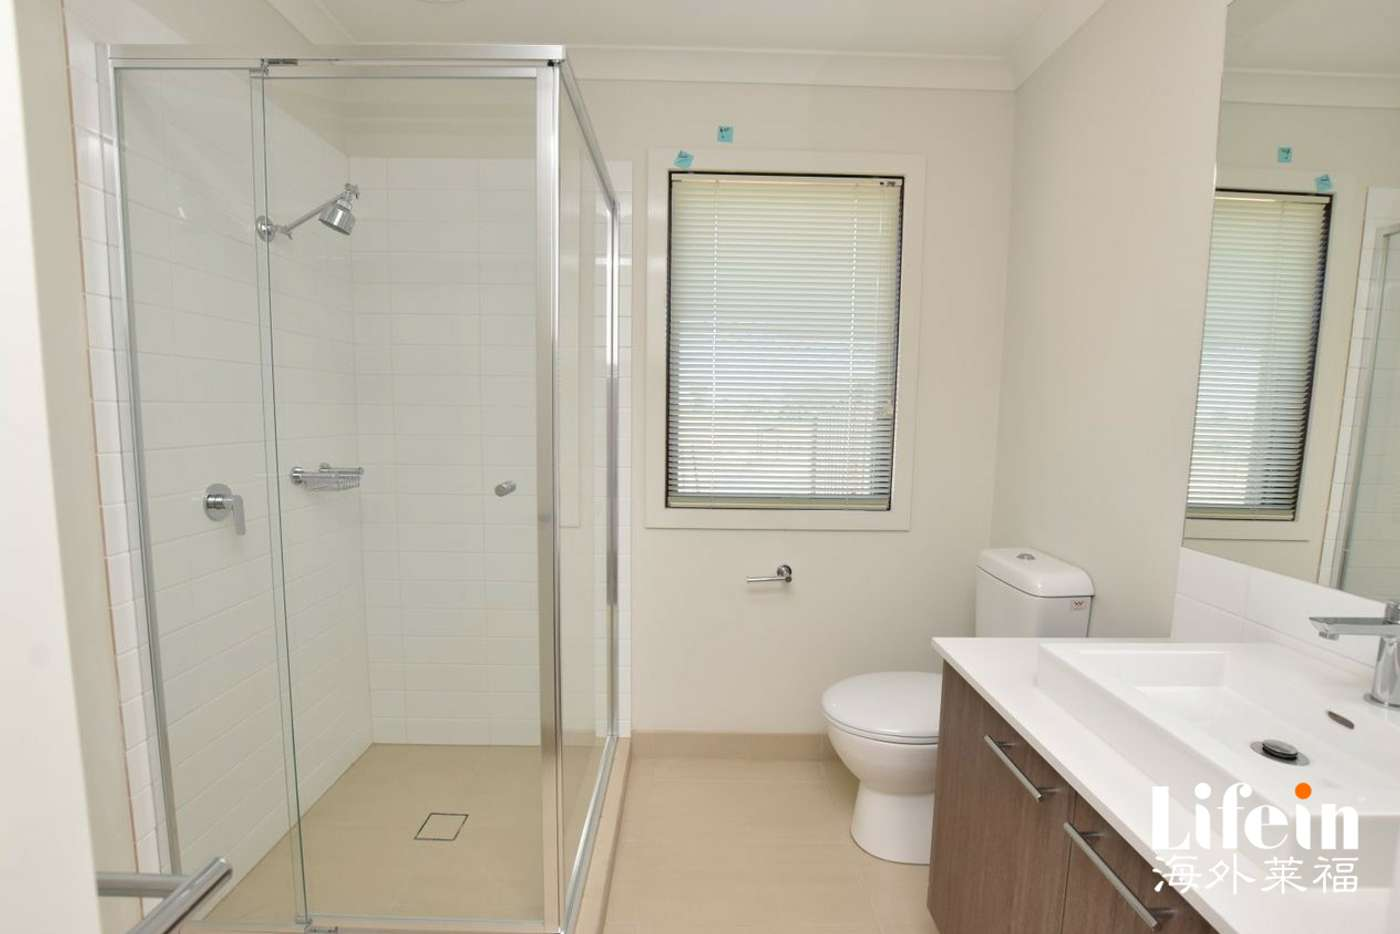 Sixth view of Homely house listing, 1 Steamer Street, Tarneit VIC 3029